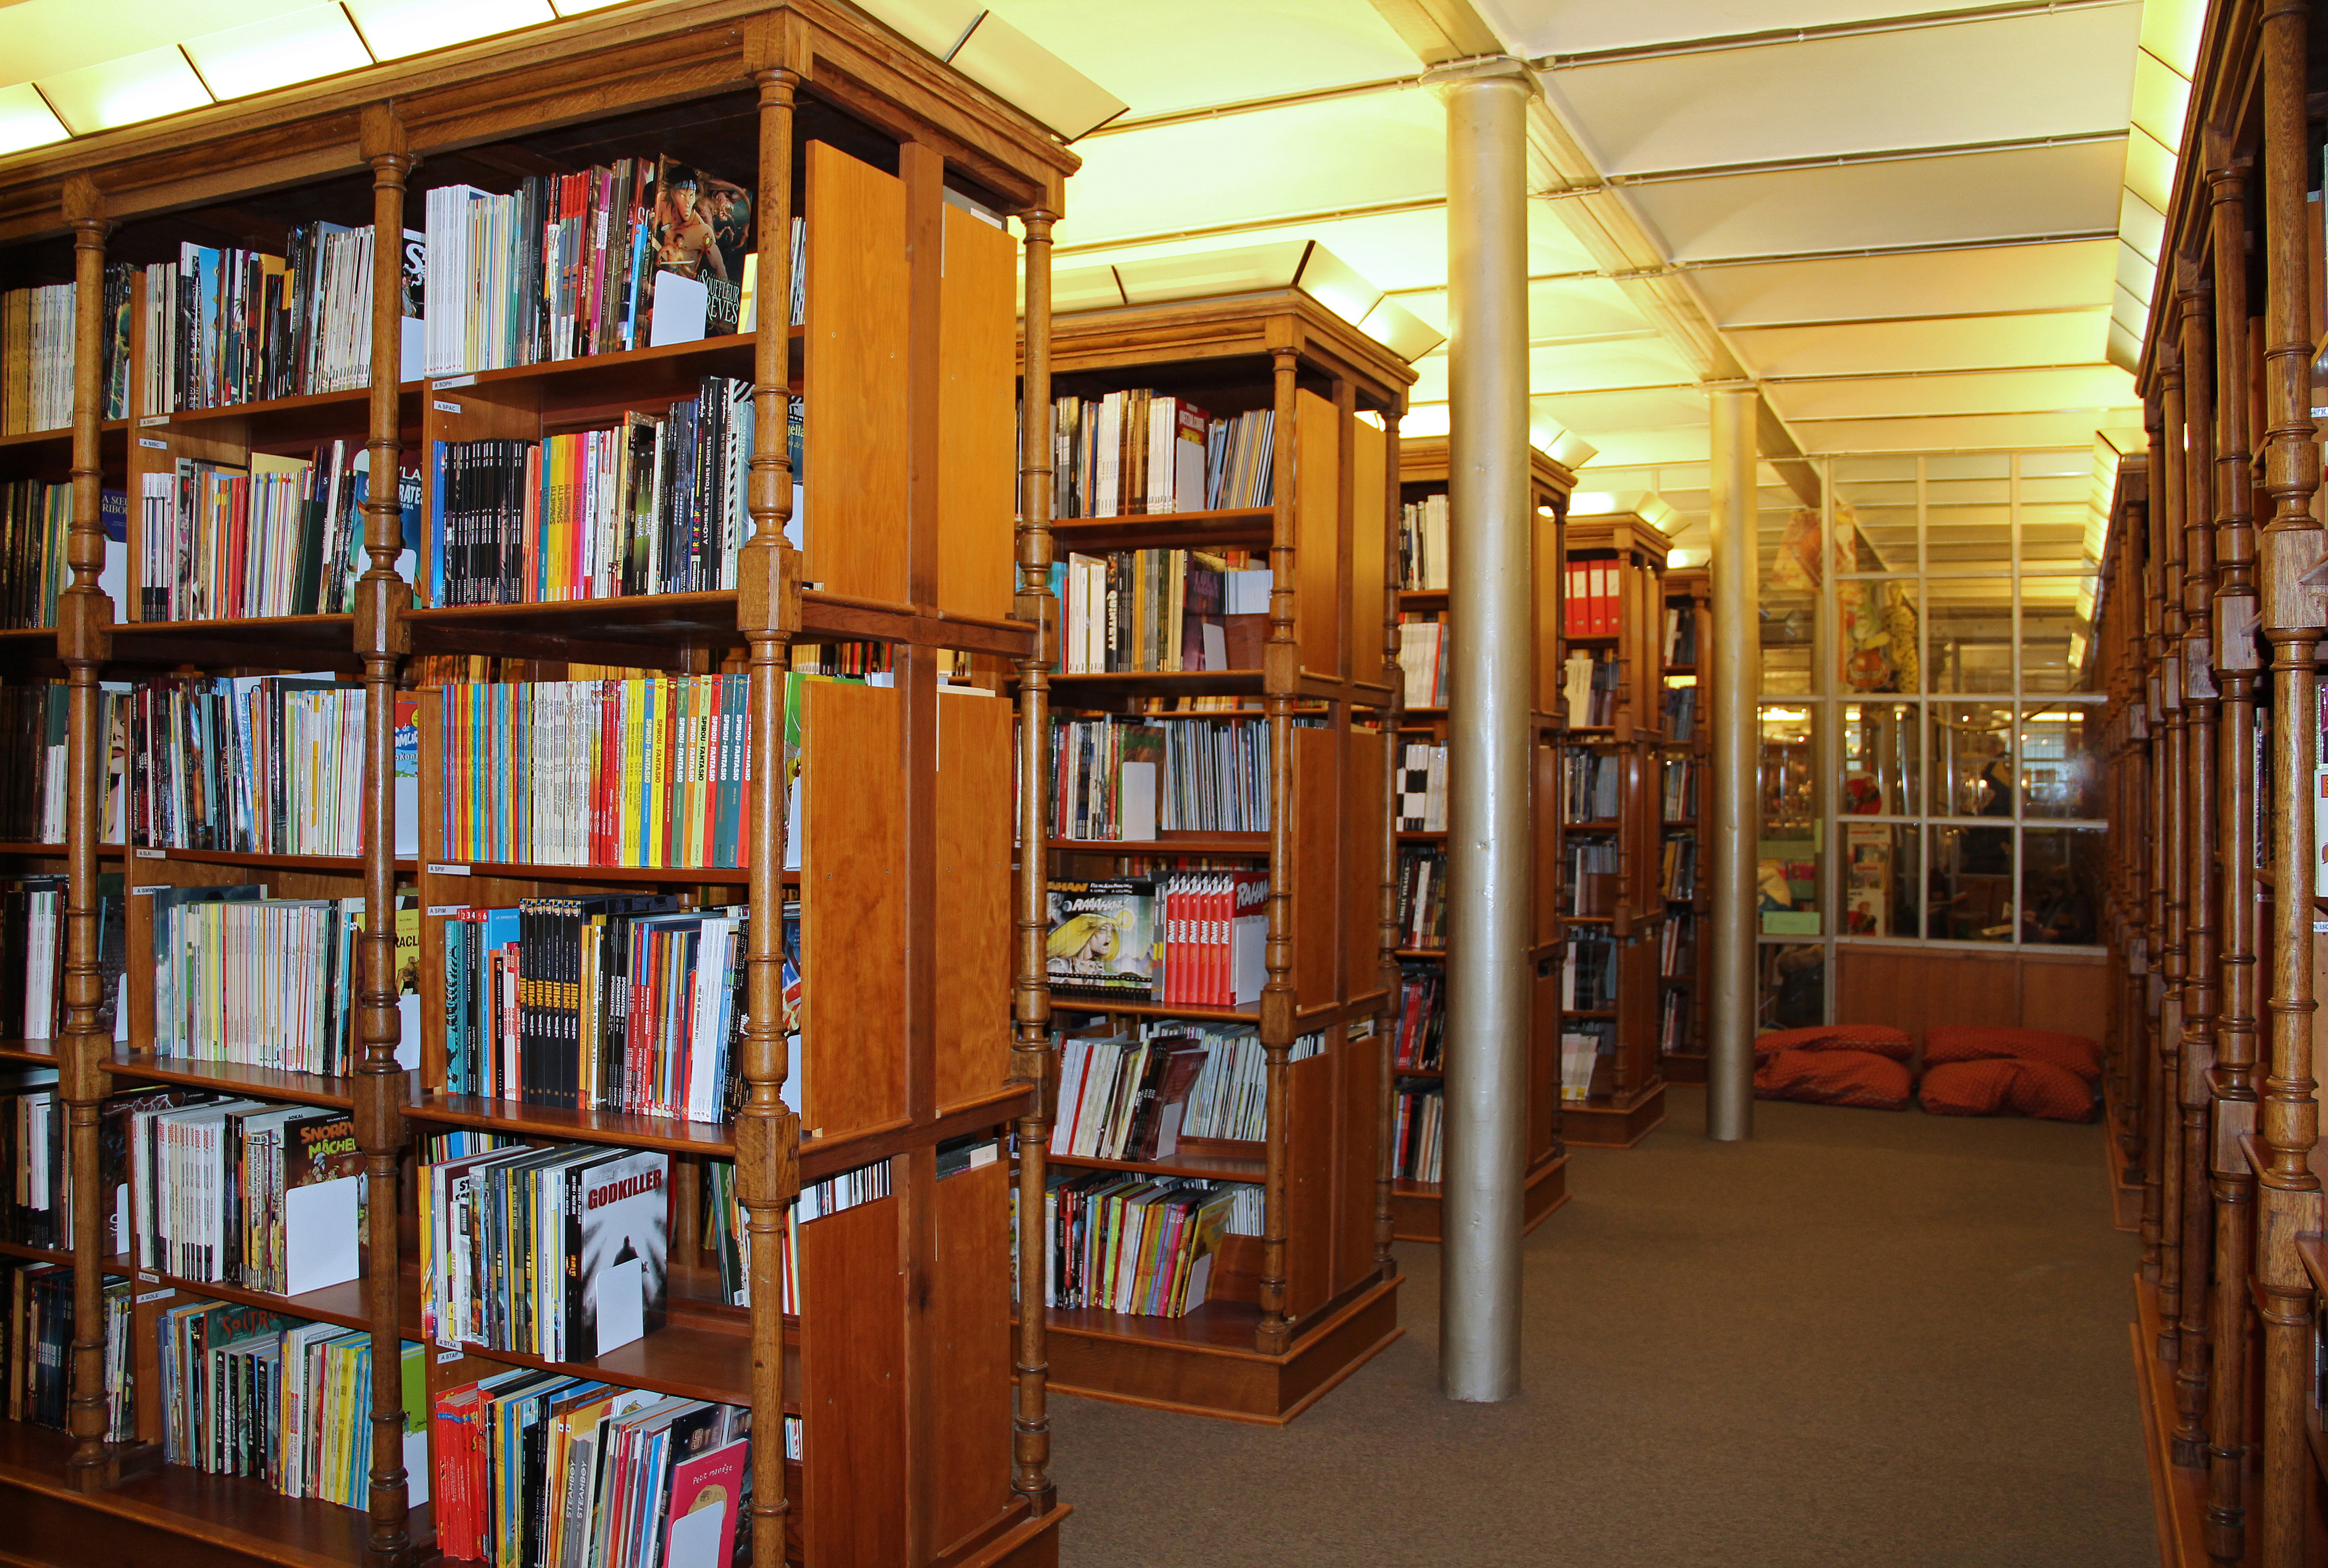 Libraries to study in brussels